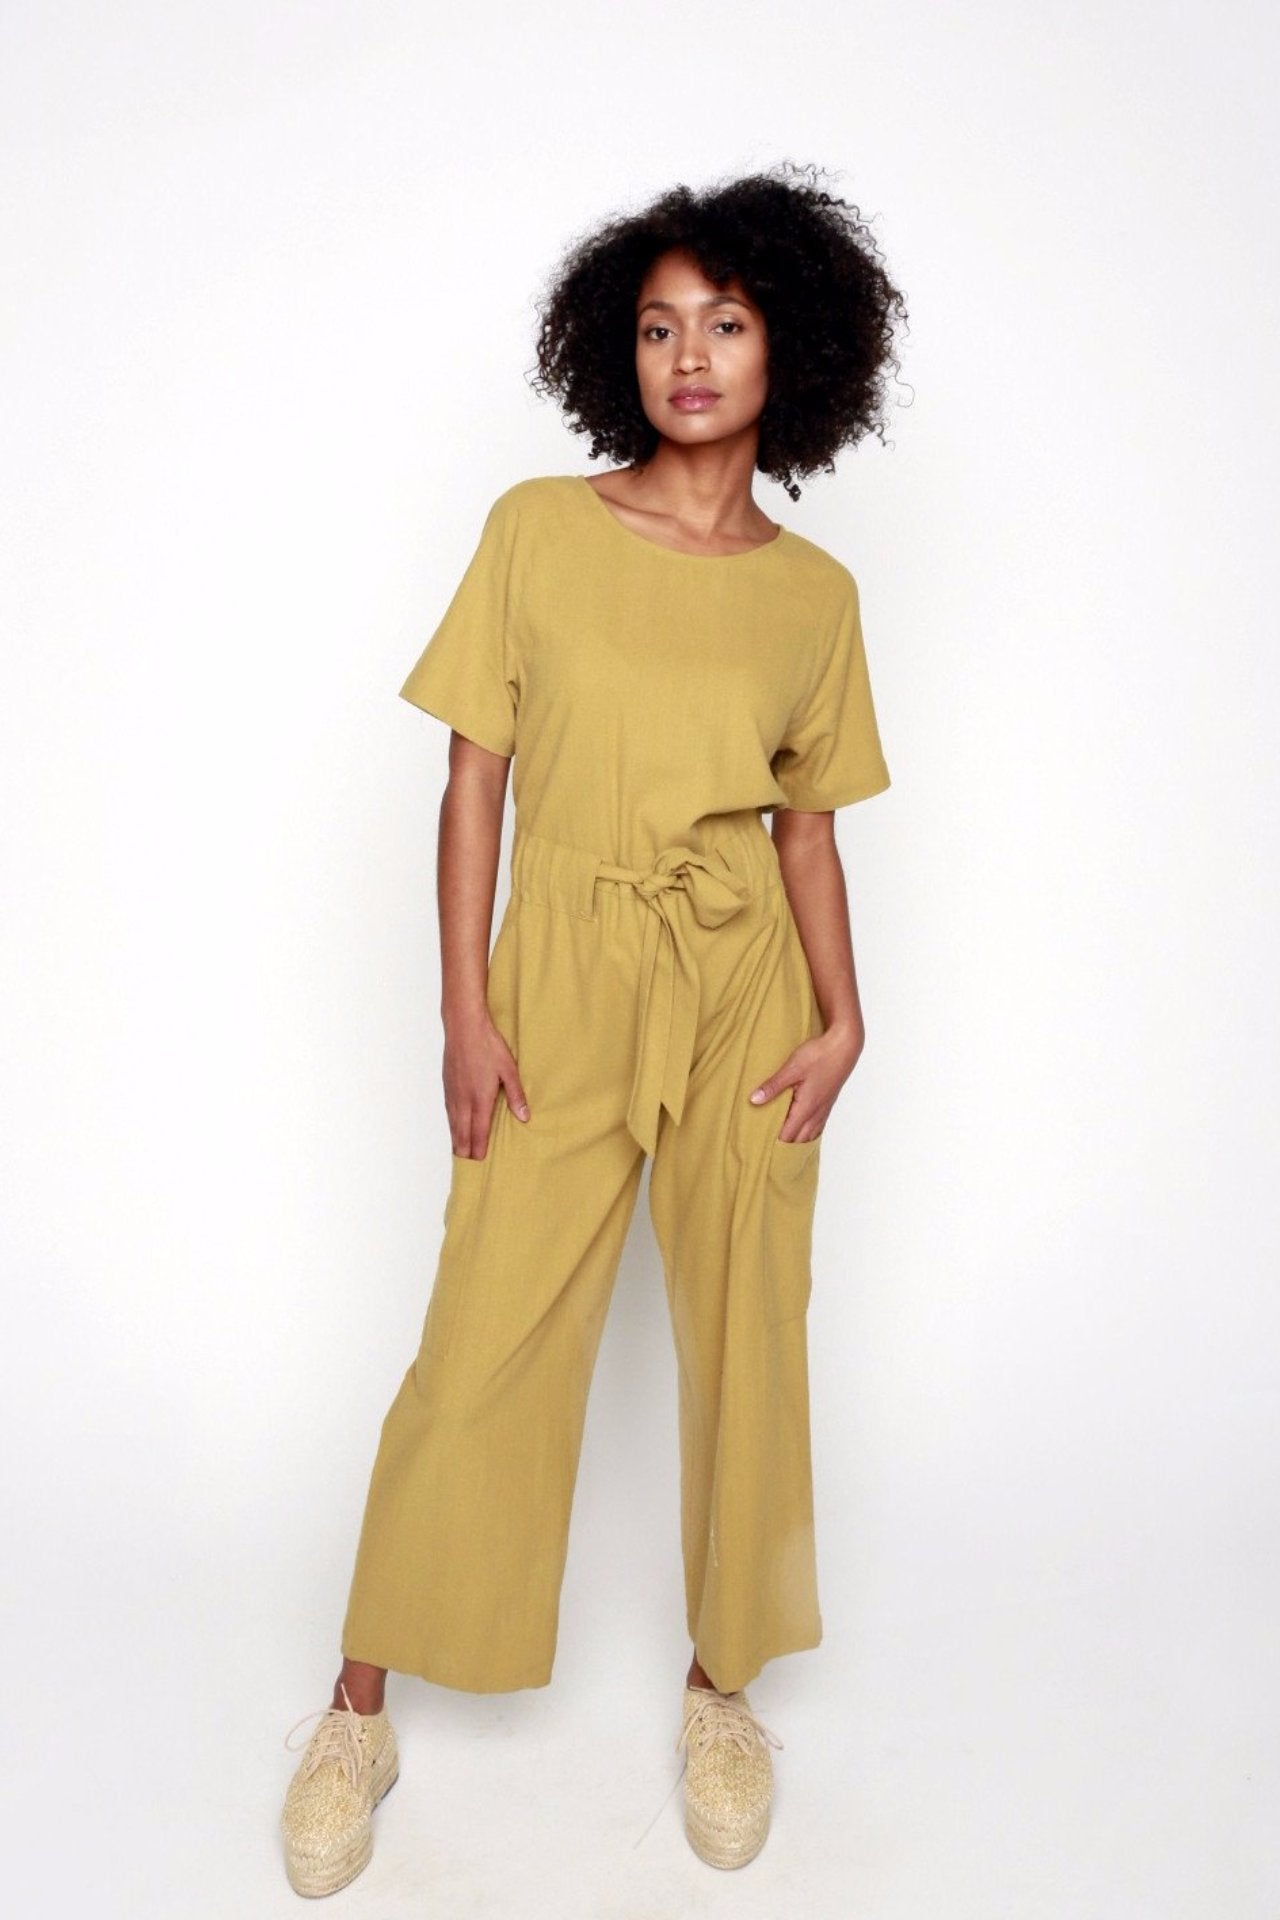 The Goods Silk Jumpsuit - 34°N 118°W